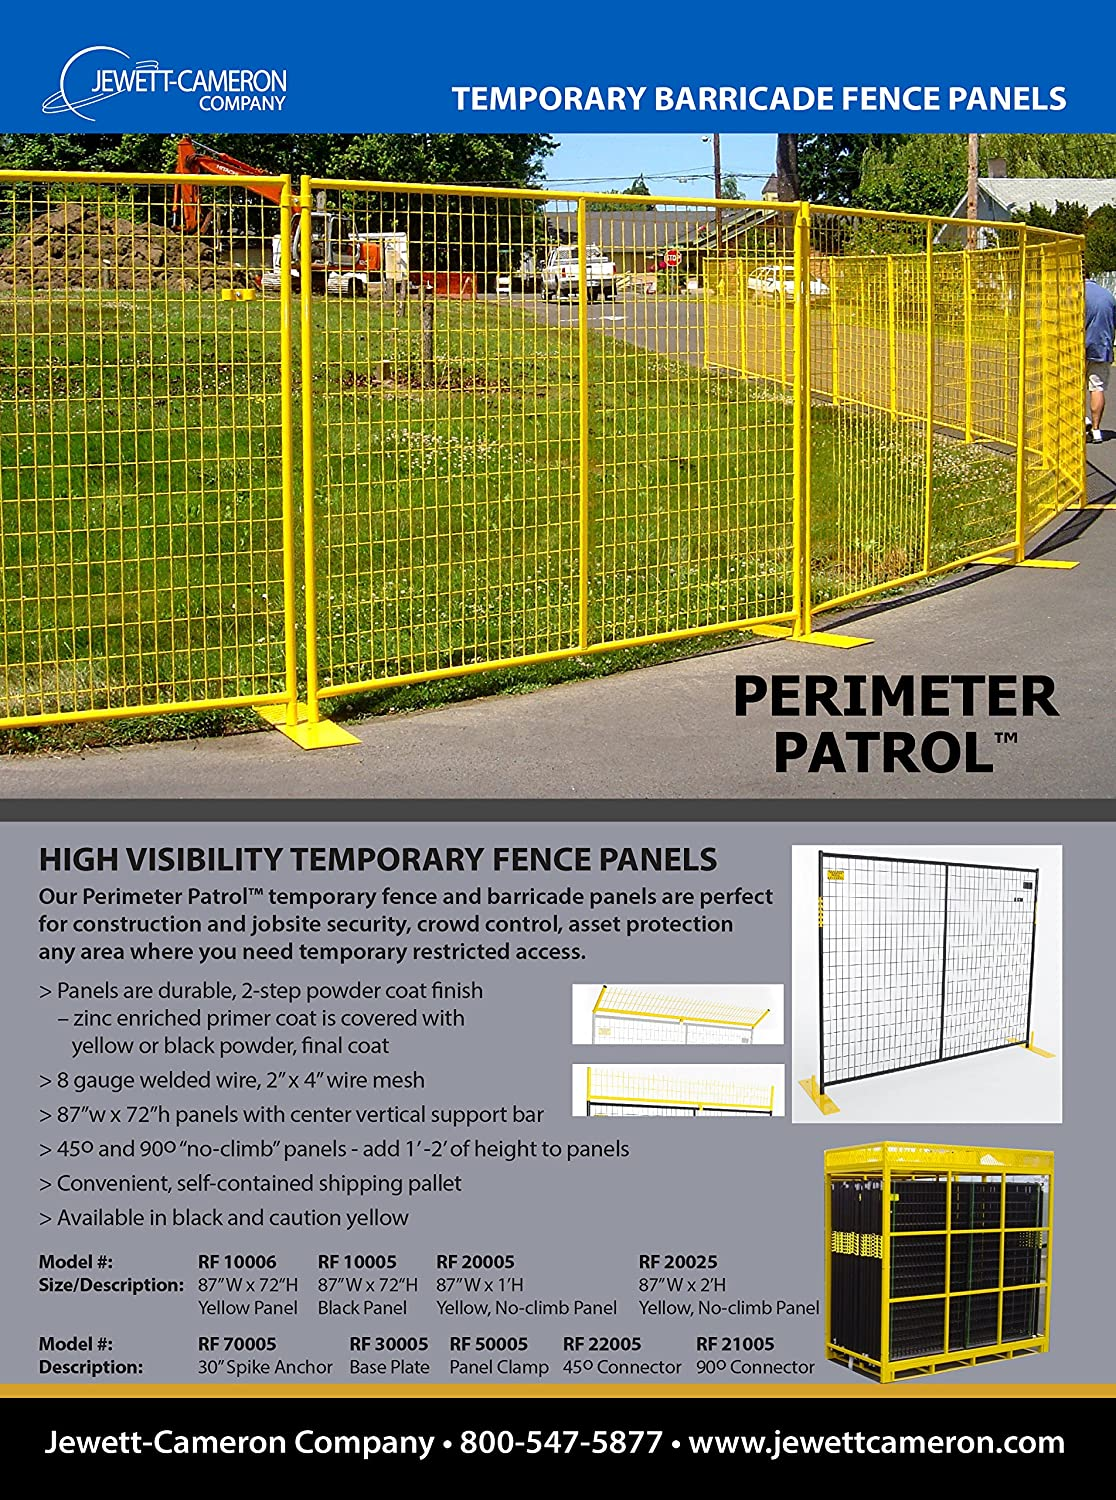 Crowd Control Temporary Fence Panels - Perimeter Patrol Portable Security  Fence Full Pallet 210 Linear Feet - Safety Barrier for protecting property,